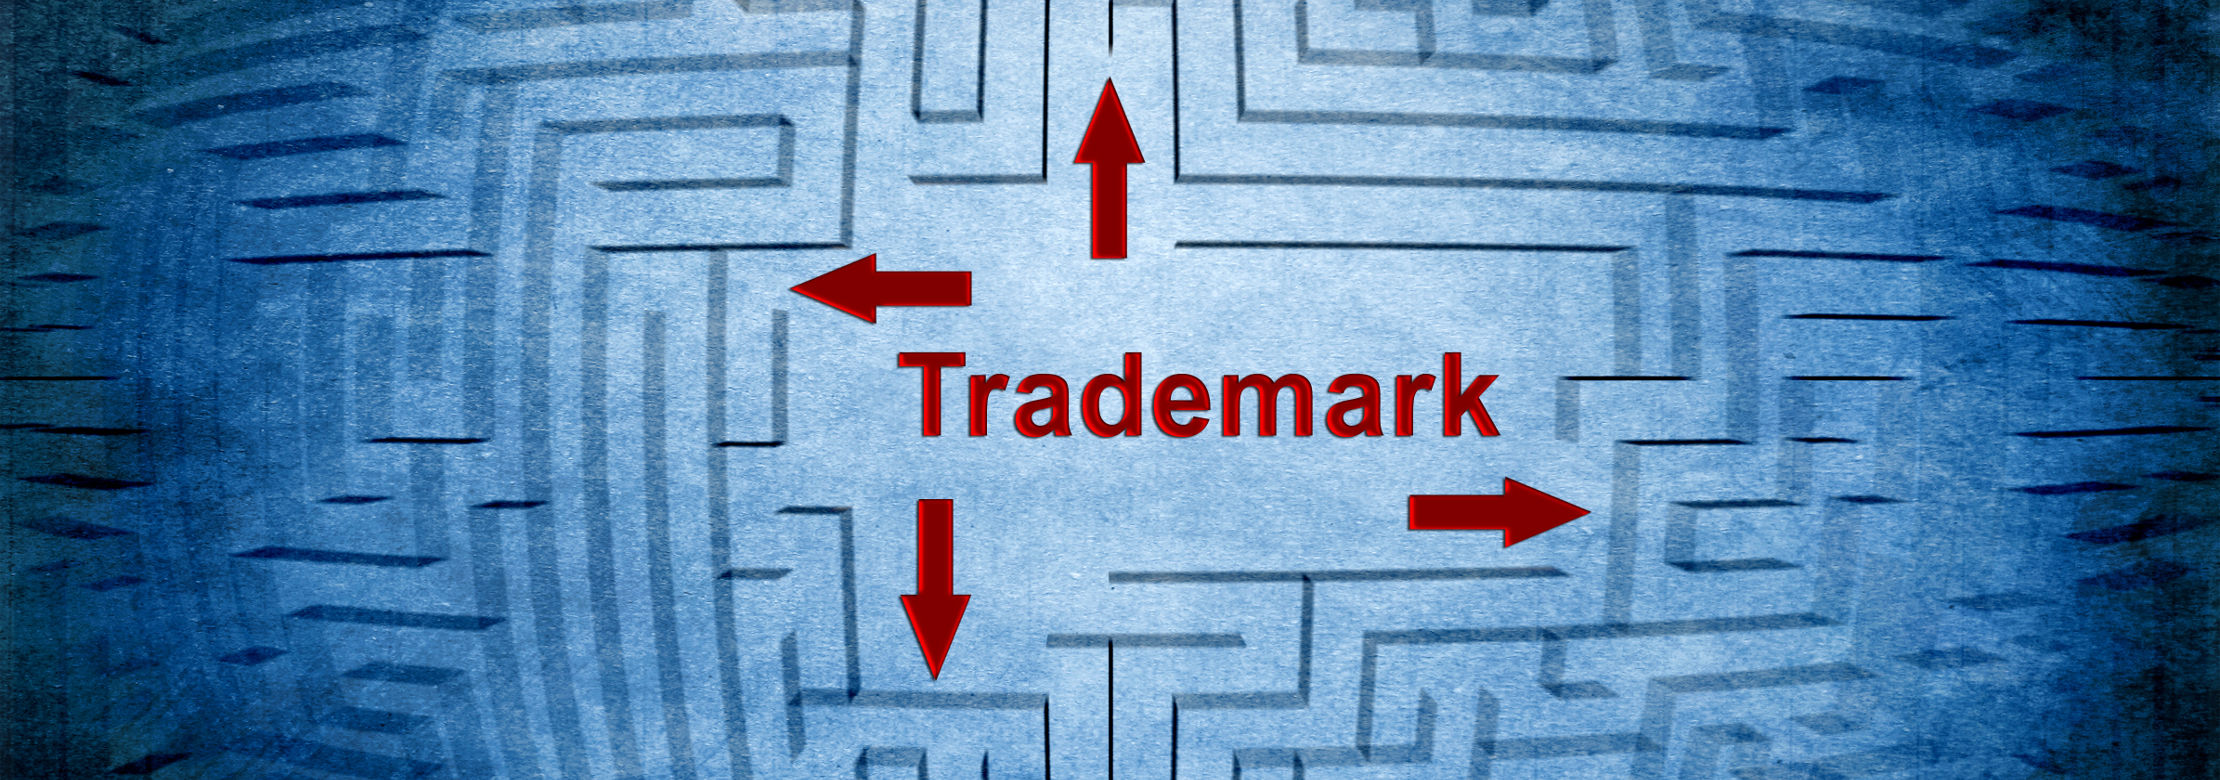 What is Trademark?